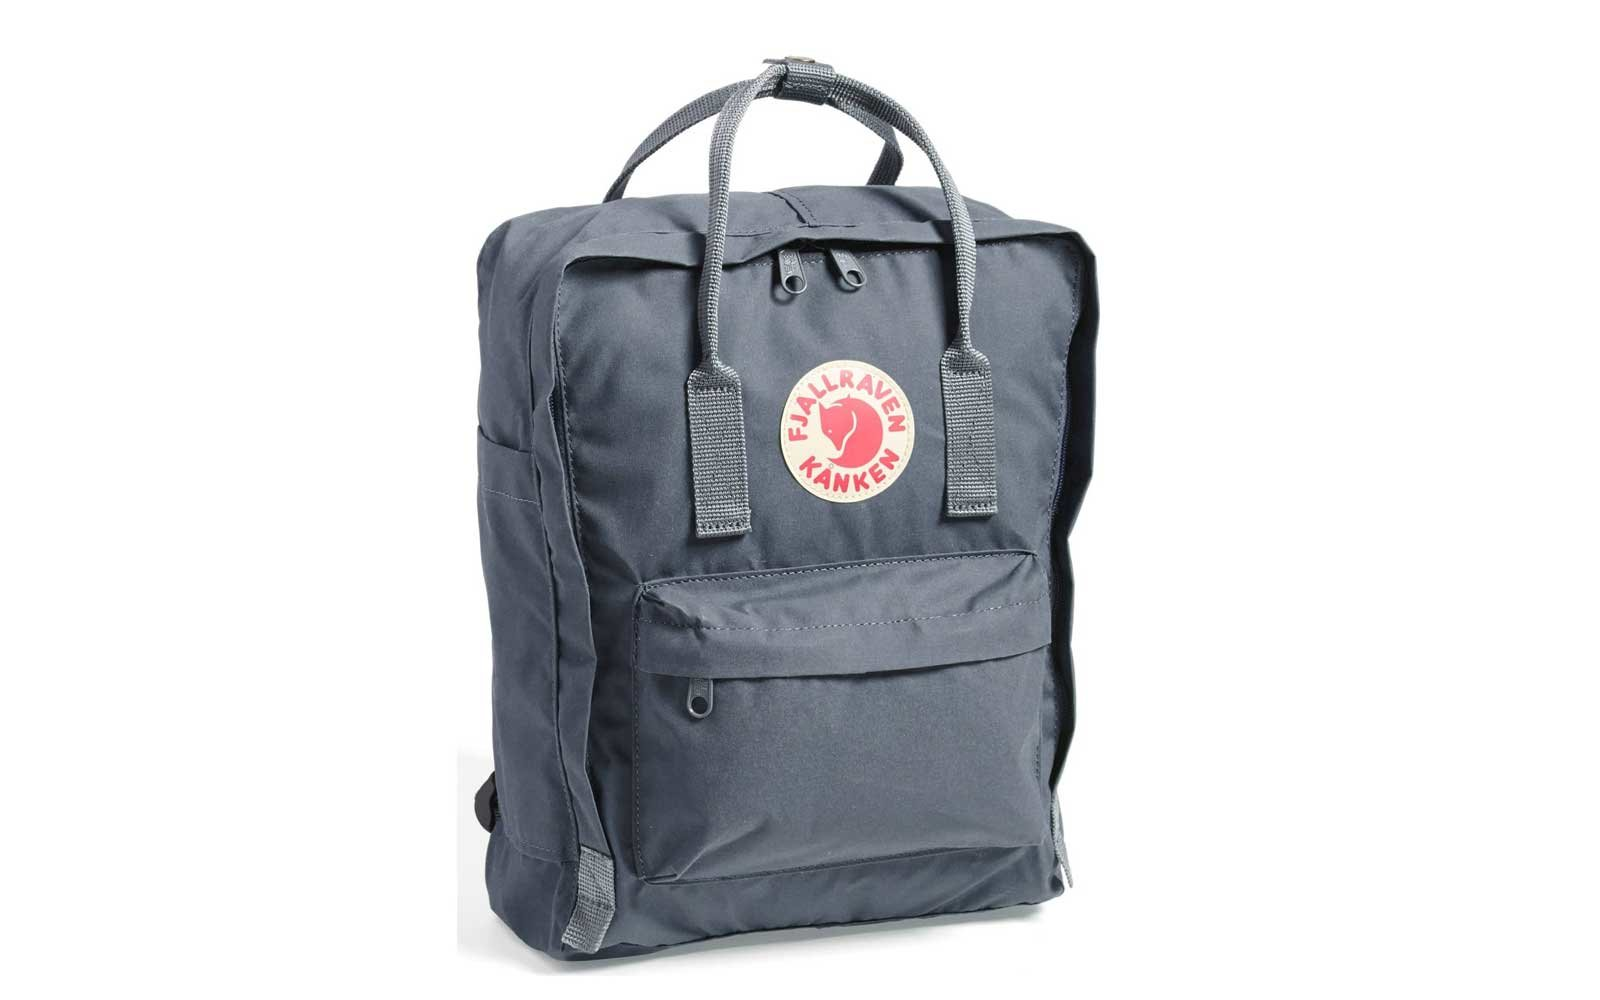 Fjallraven Backpack Gifts For Teens